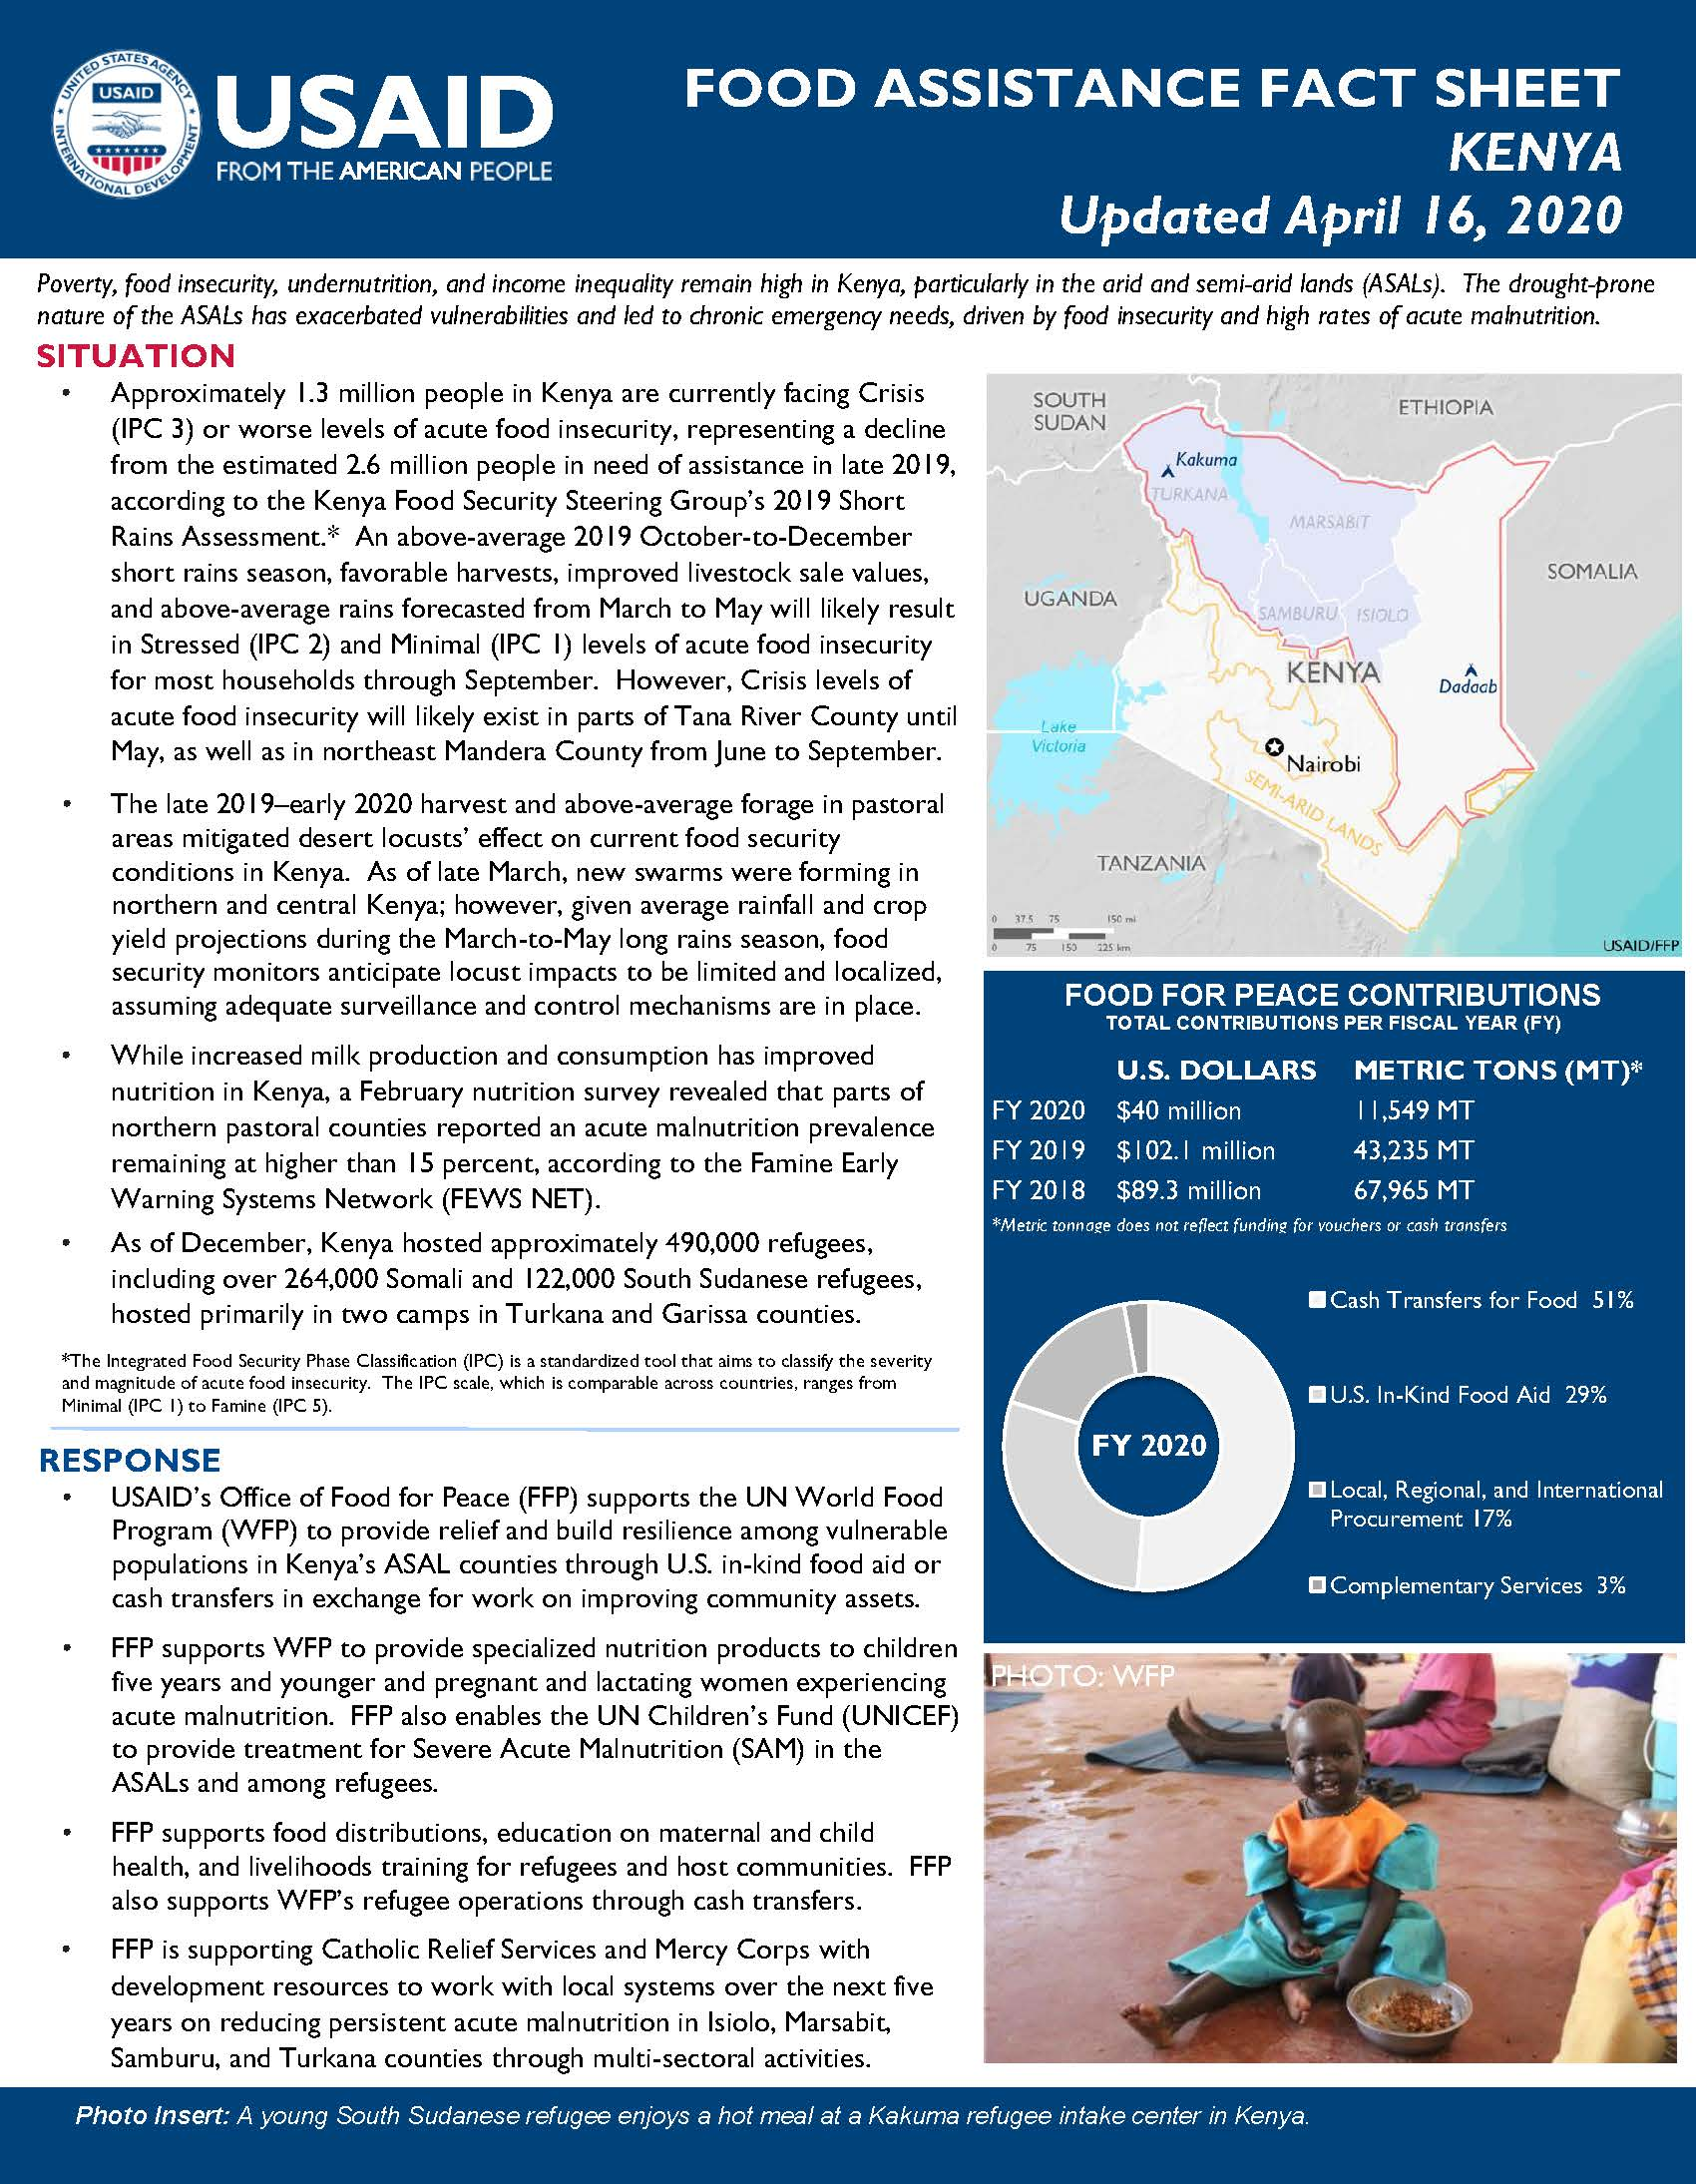 Food Assistance Fact Sheet - Kenya